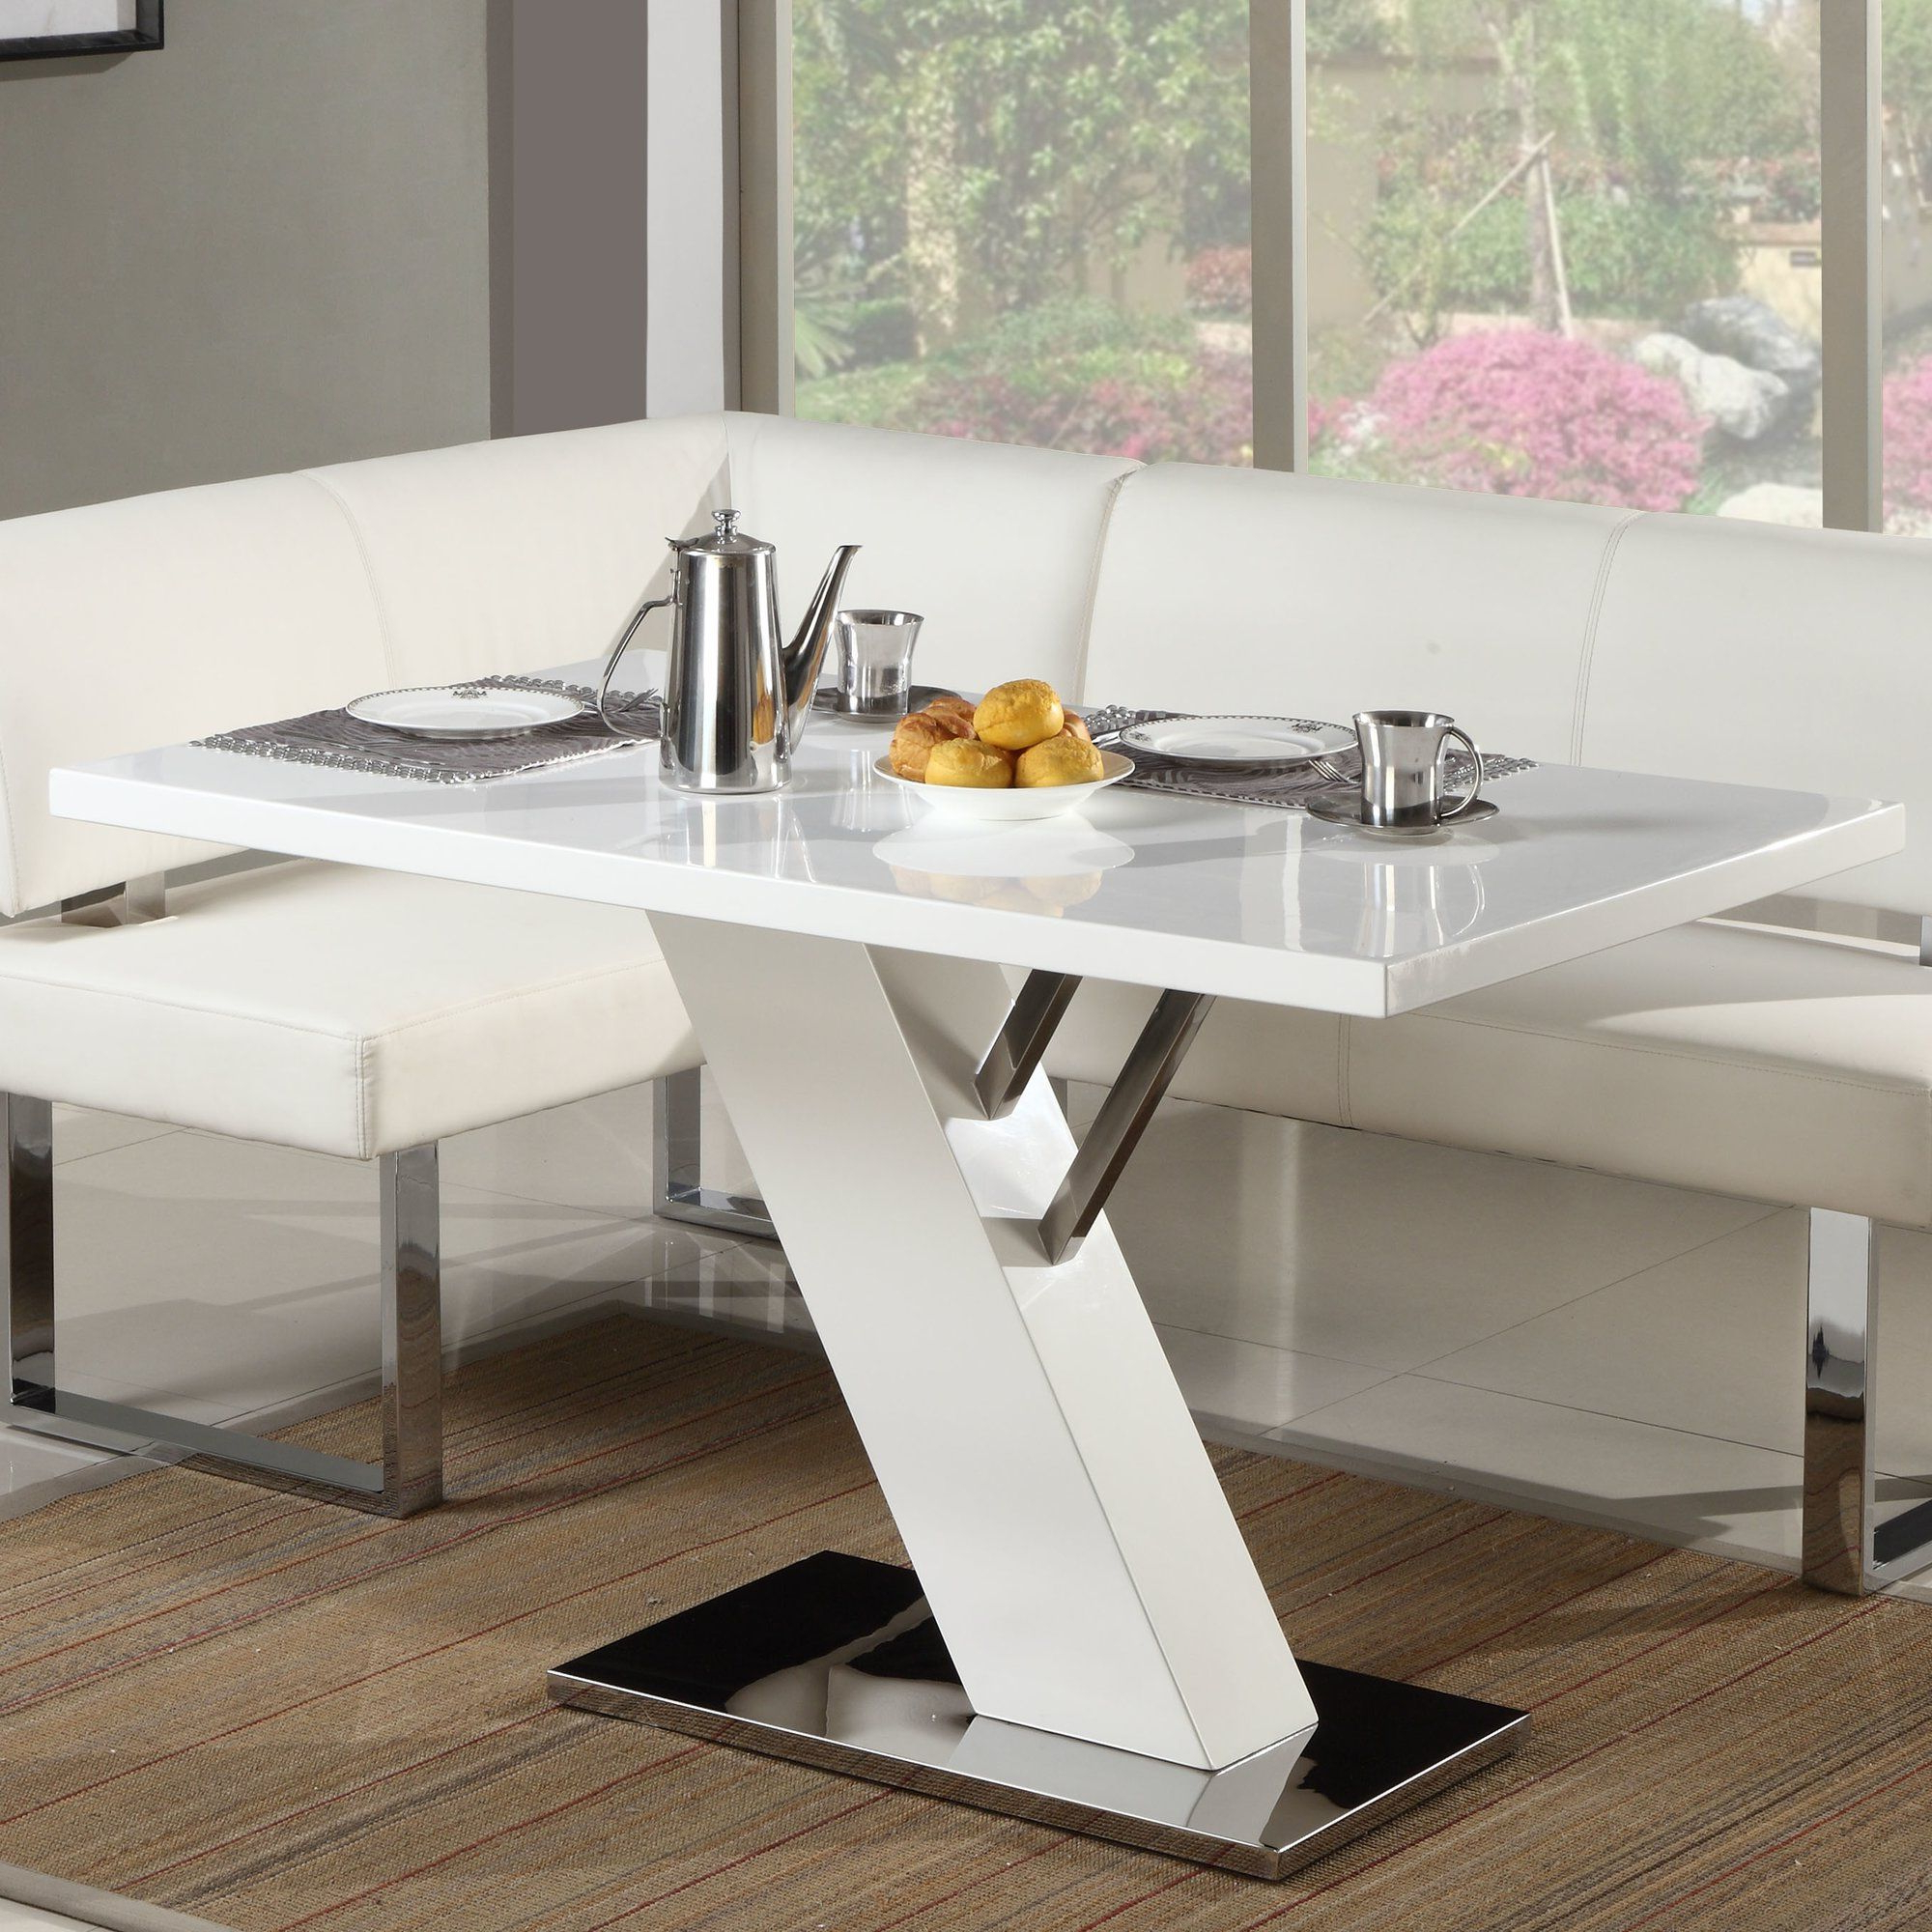 Linden Round Pedestal Dining Tables Throughout Fashionable Linden 2 Piece Breakfast Nook Dining Set In  (View 24 of 25)